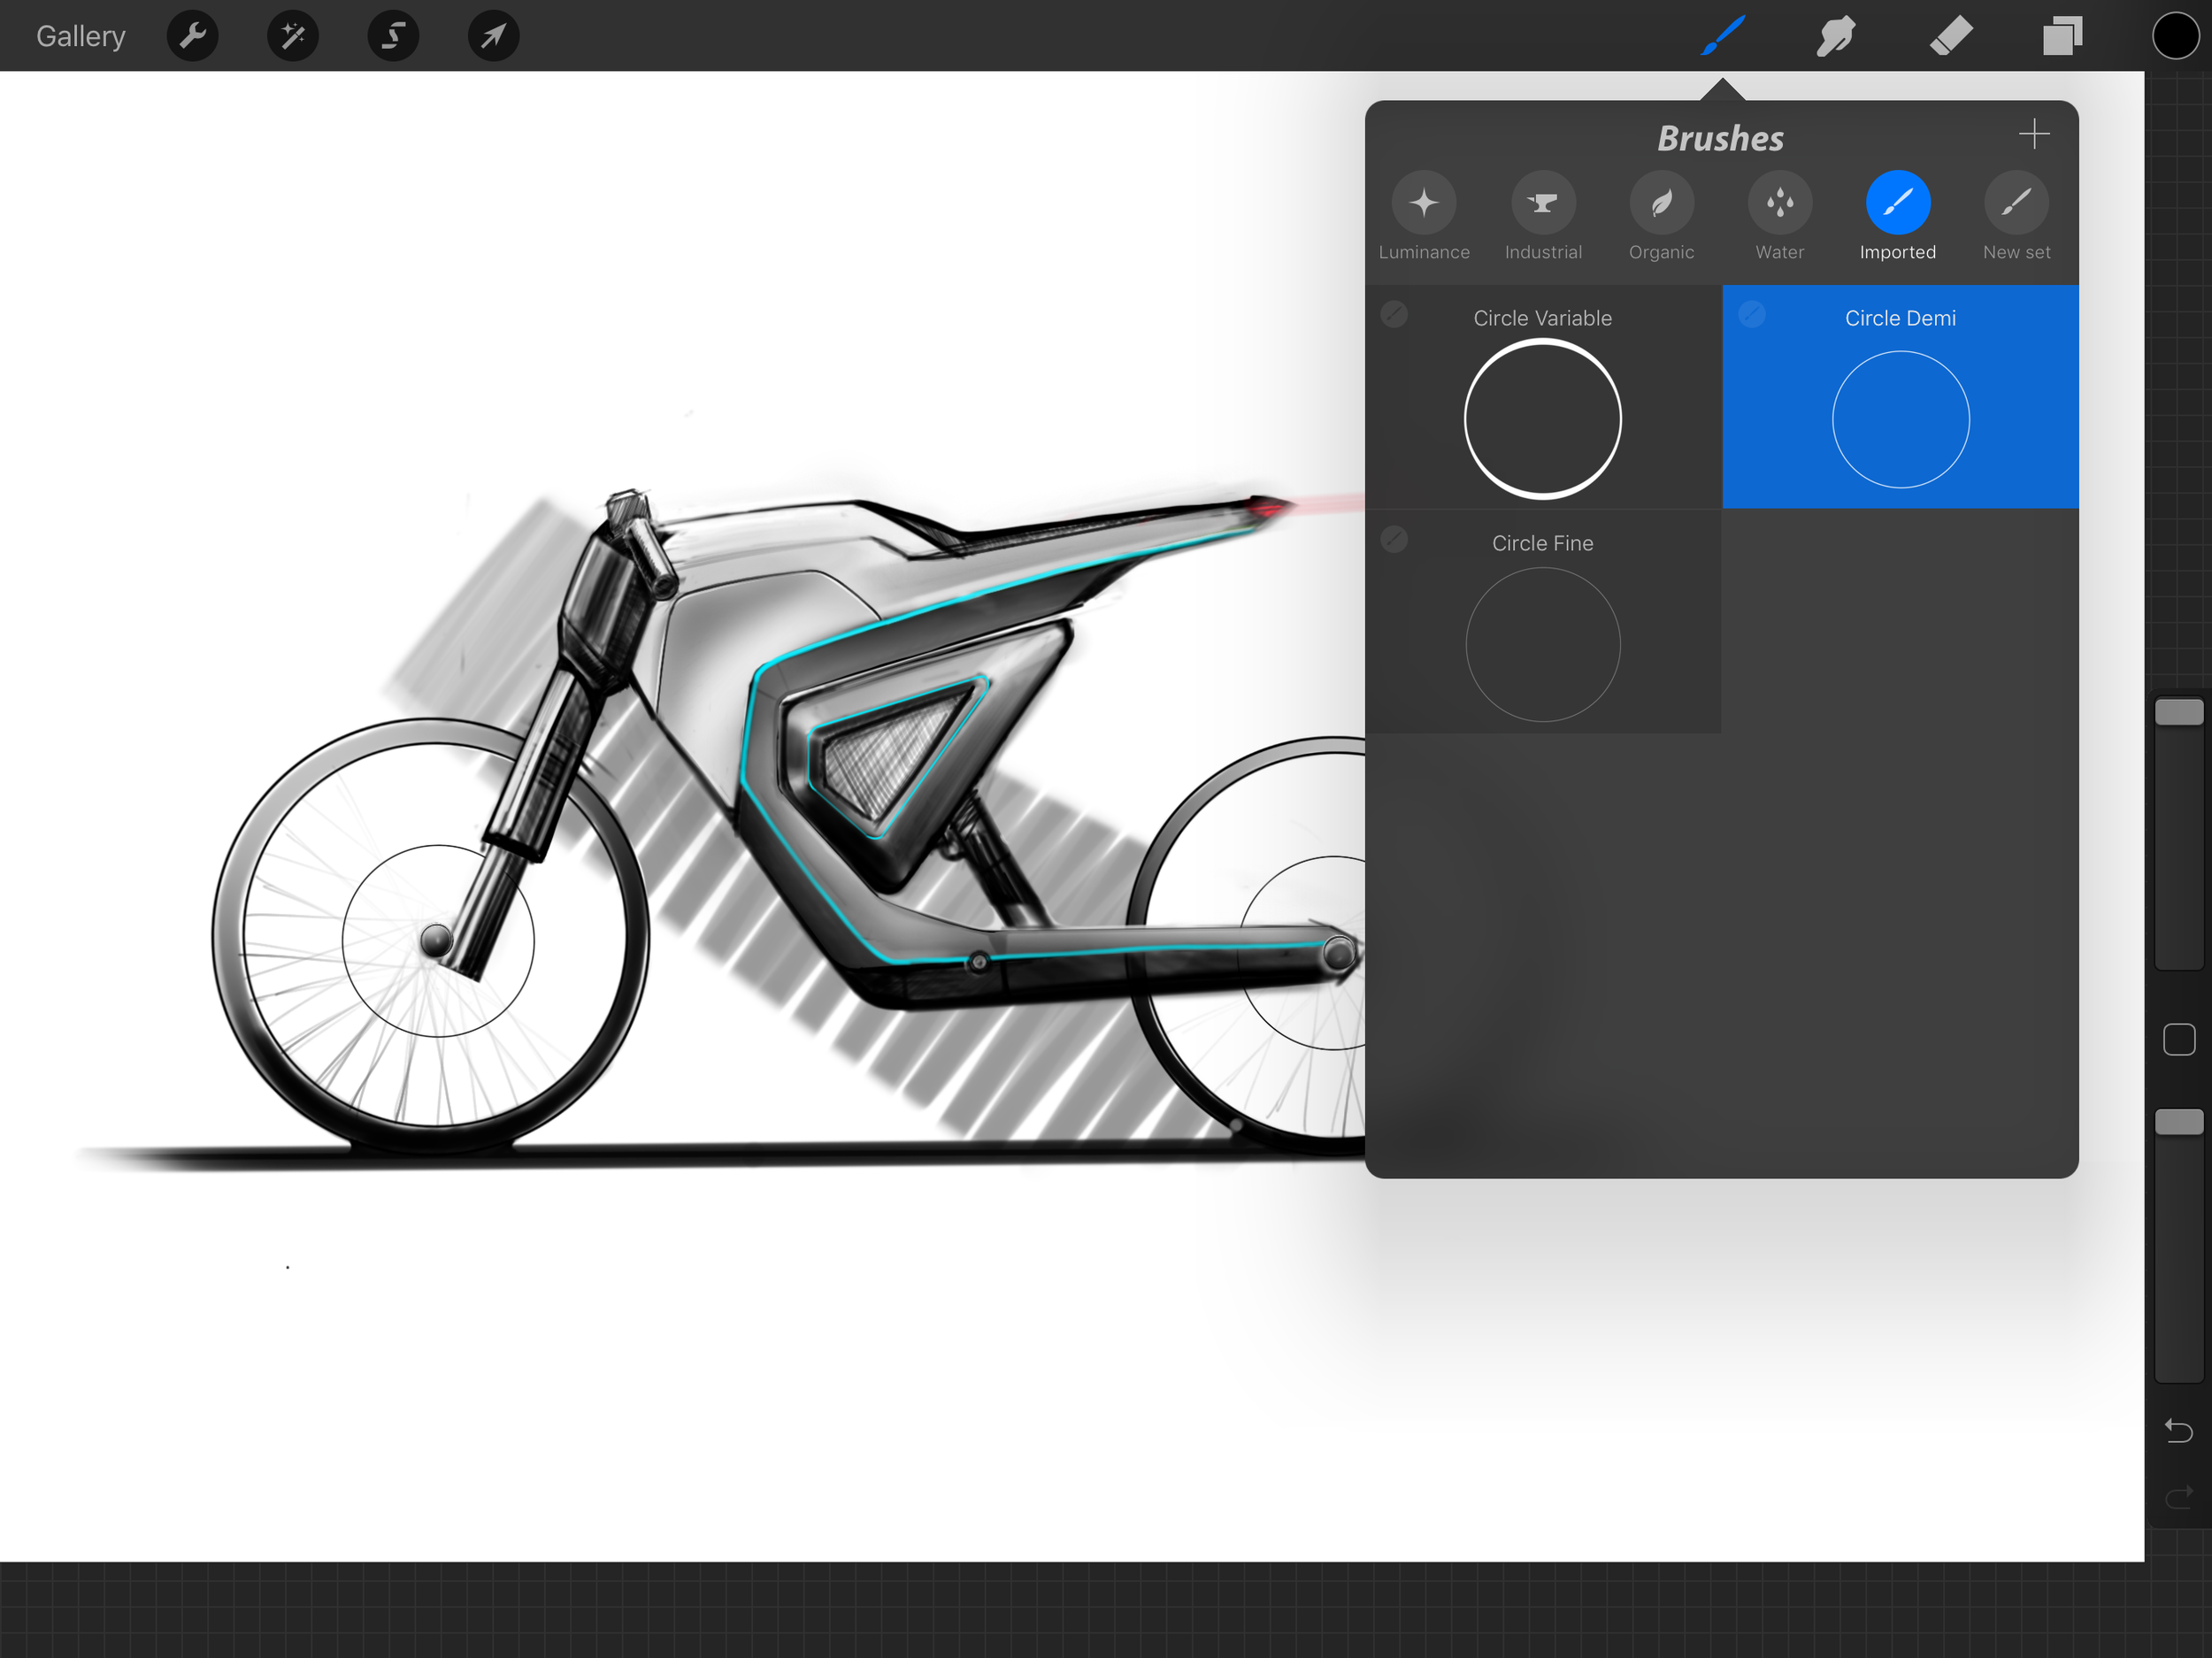 Procreate offers a wide array of tools, but the lack of guides is a major drawback, and imported brushes is the workaround